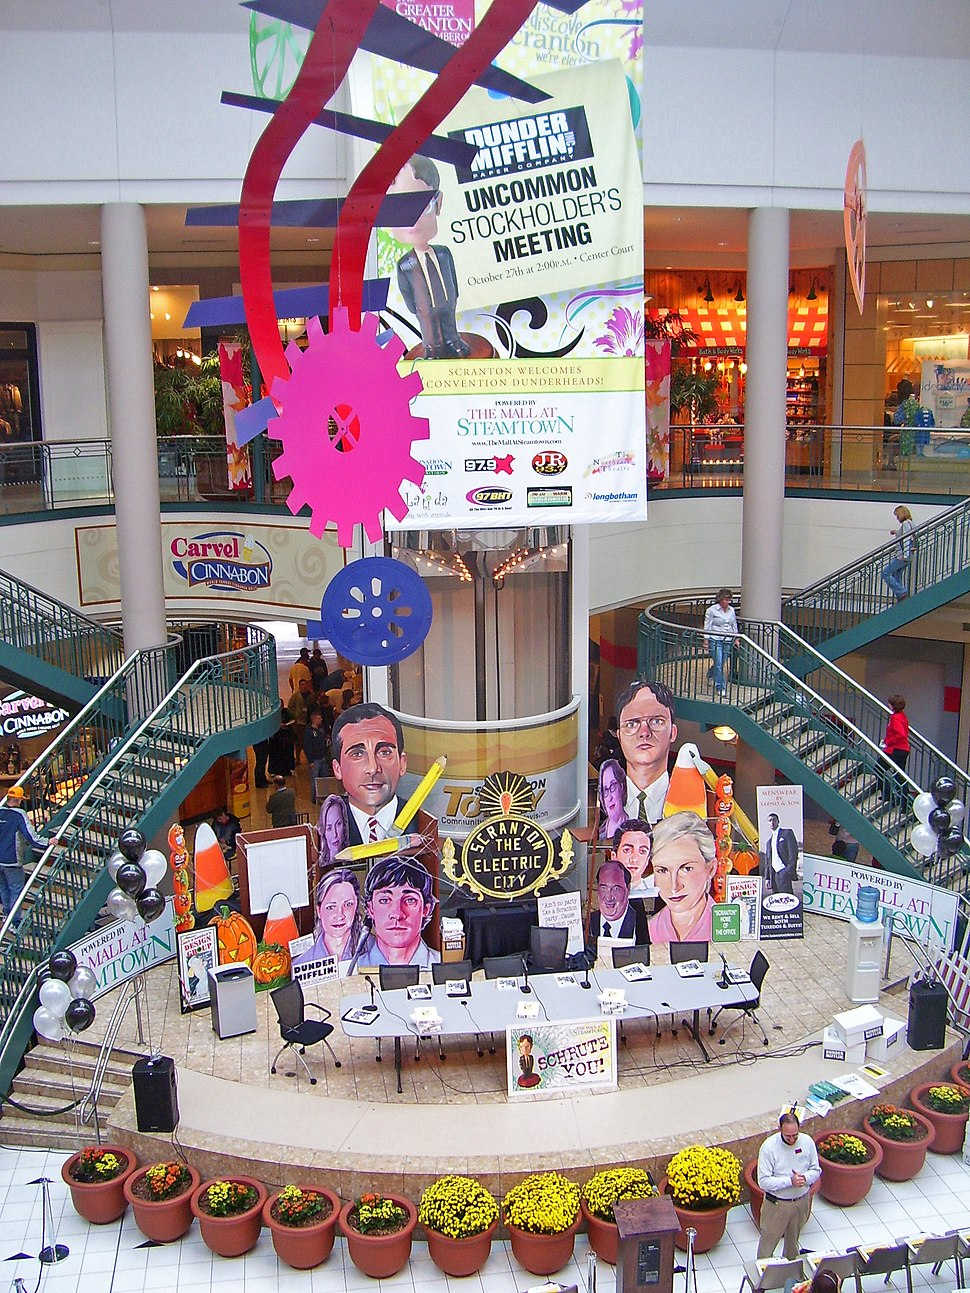 Mall at Steamtown atrium during Office convention